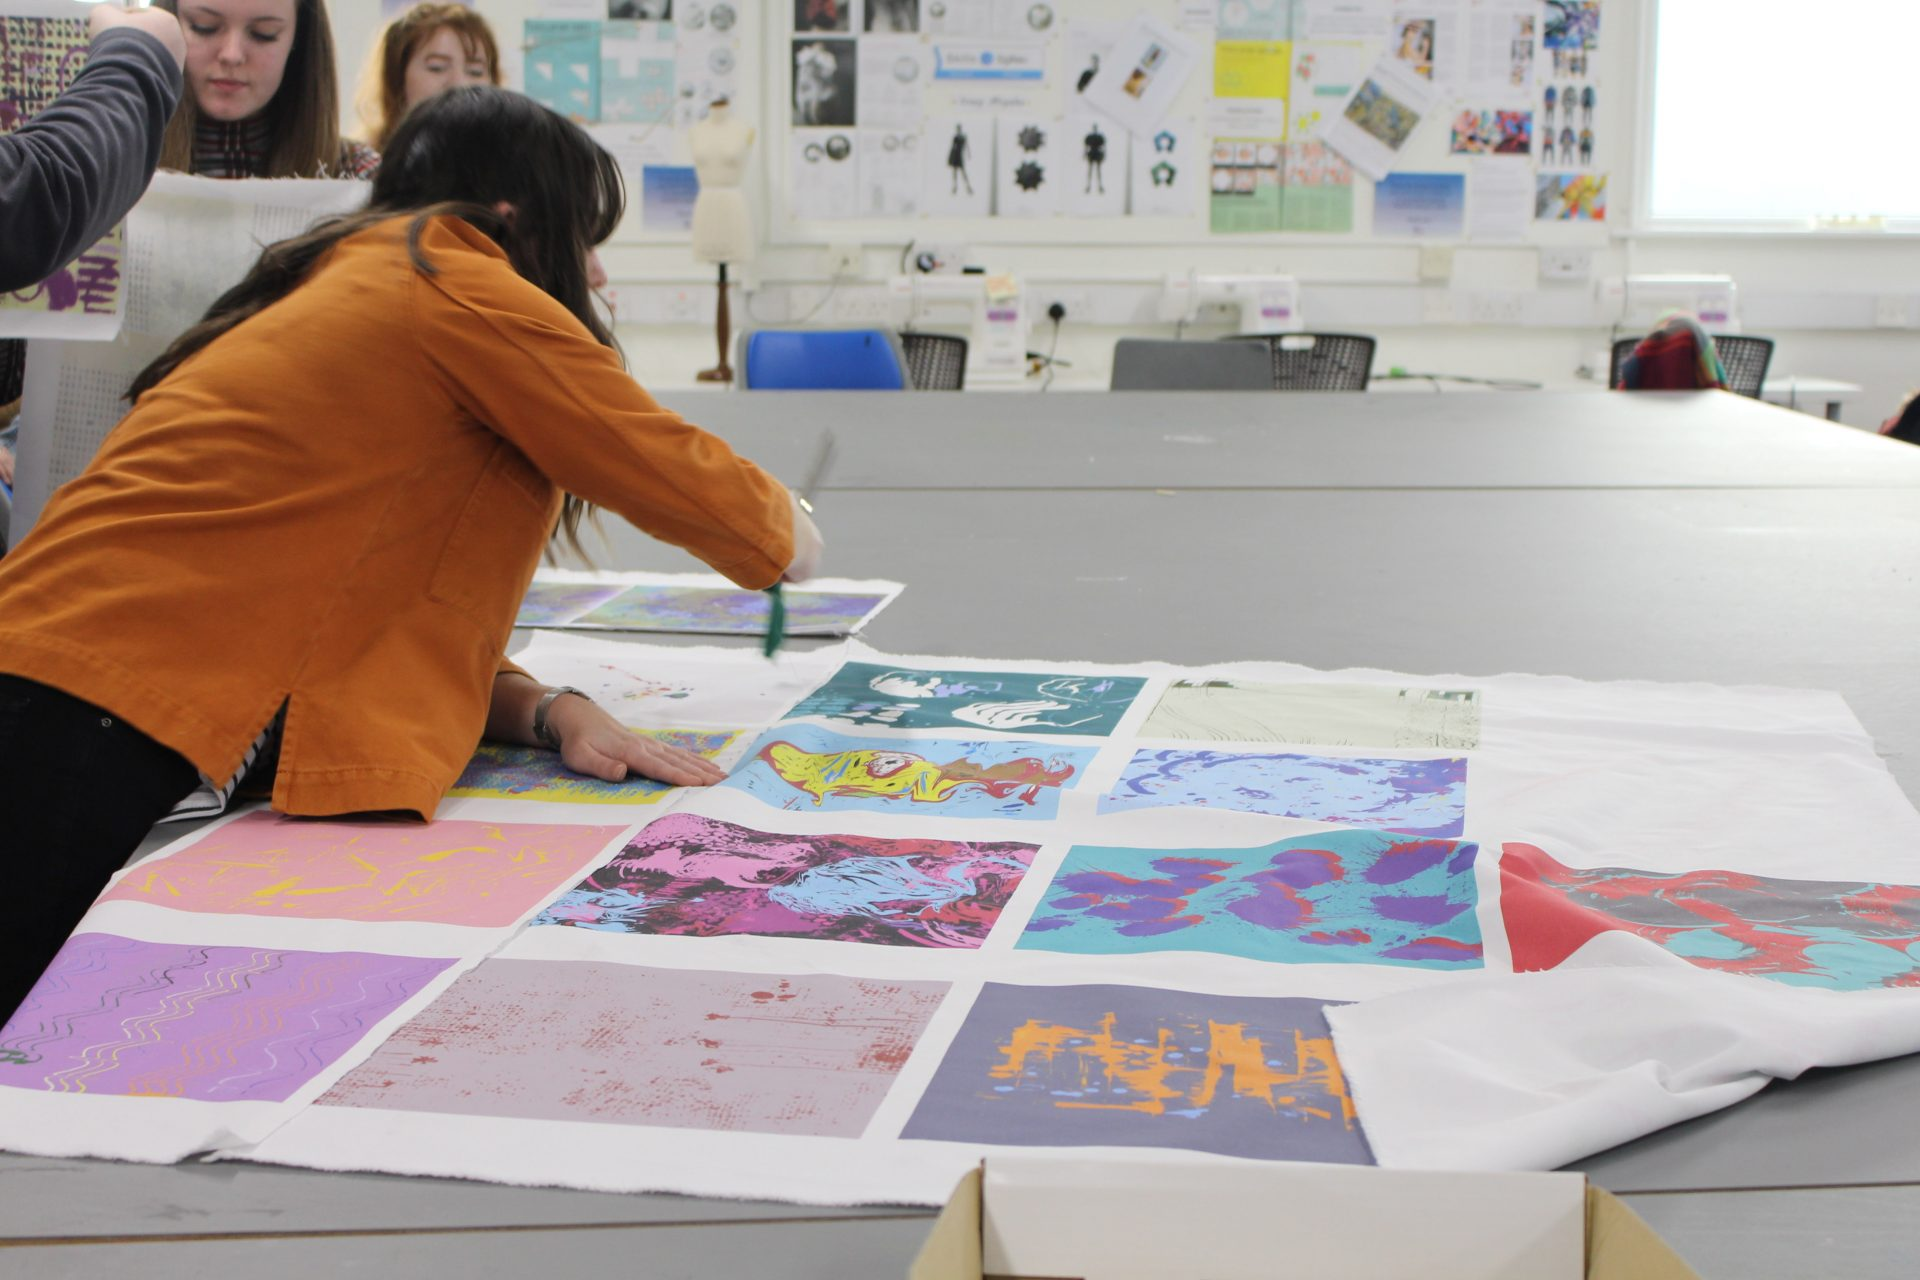 Textiles design masterclass with Kathryn Lewis